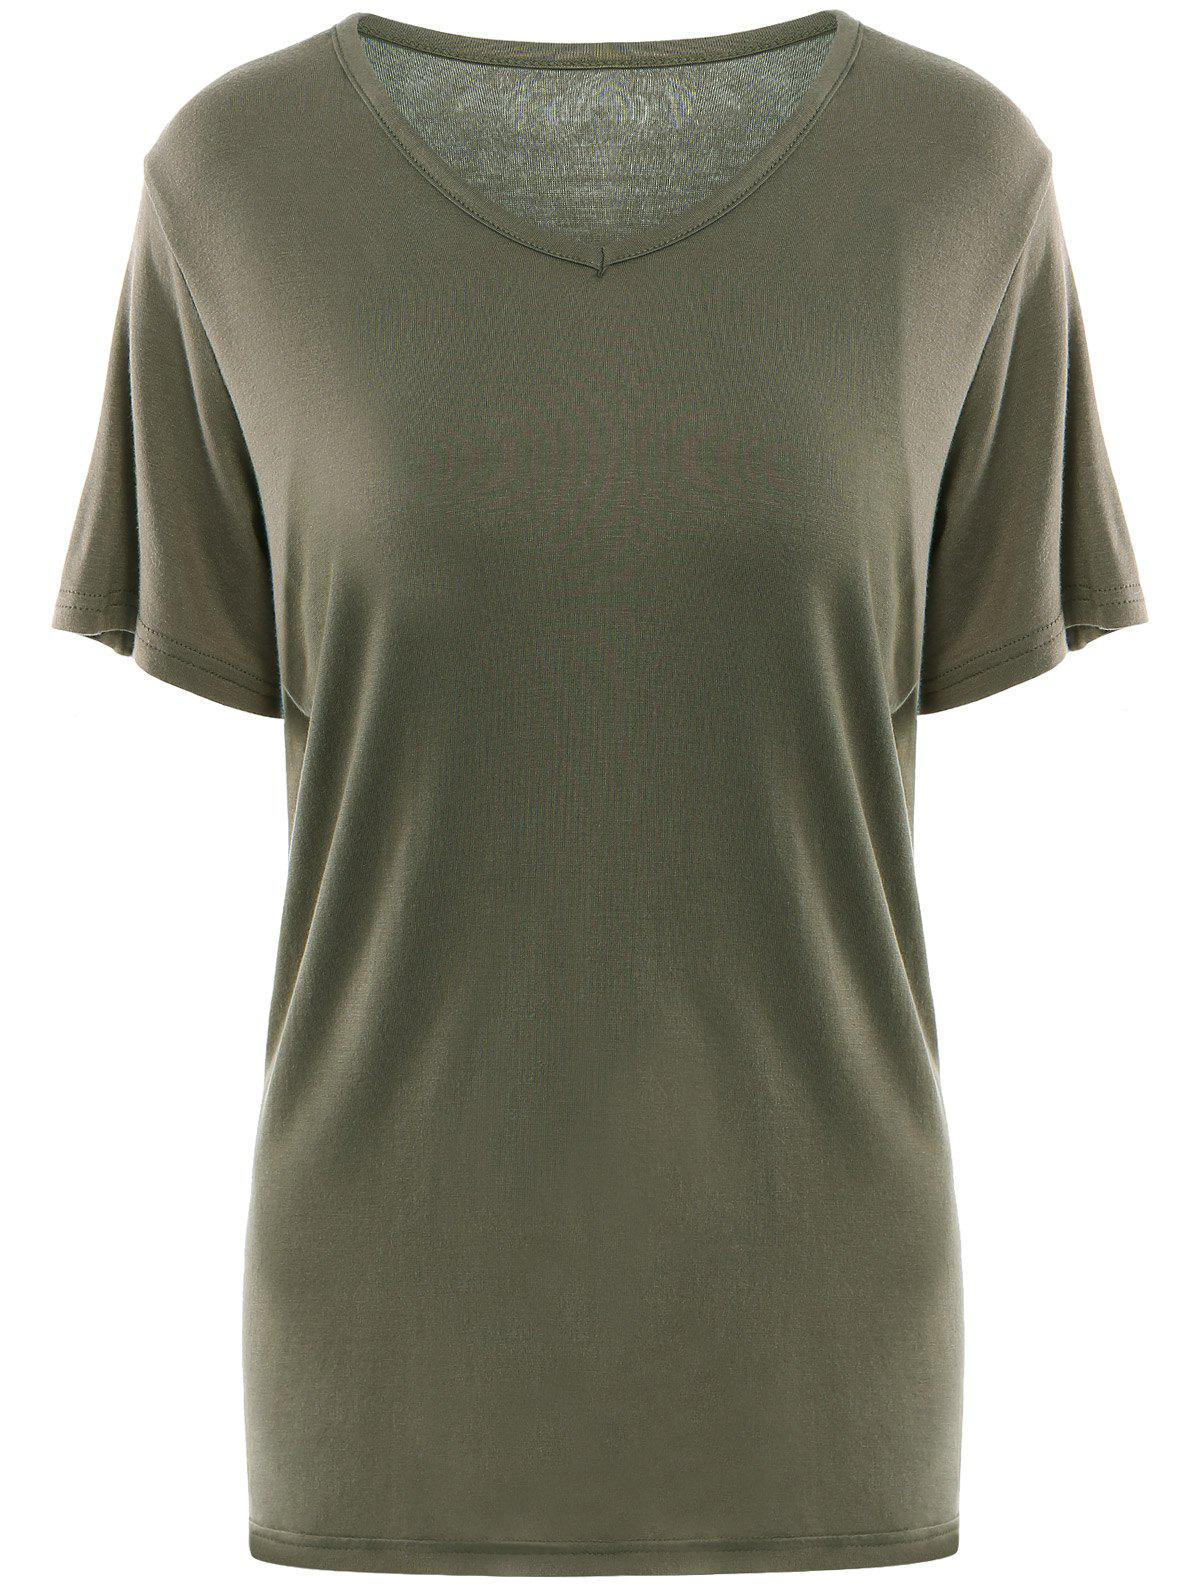 Simple Short Sleeves V Neck Pure Color T-Shirt For WomenWomen<br><br><br>Size: XL<br>Color: ARMY GREEN